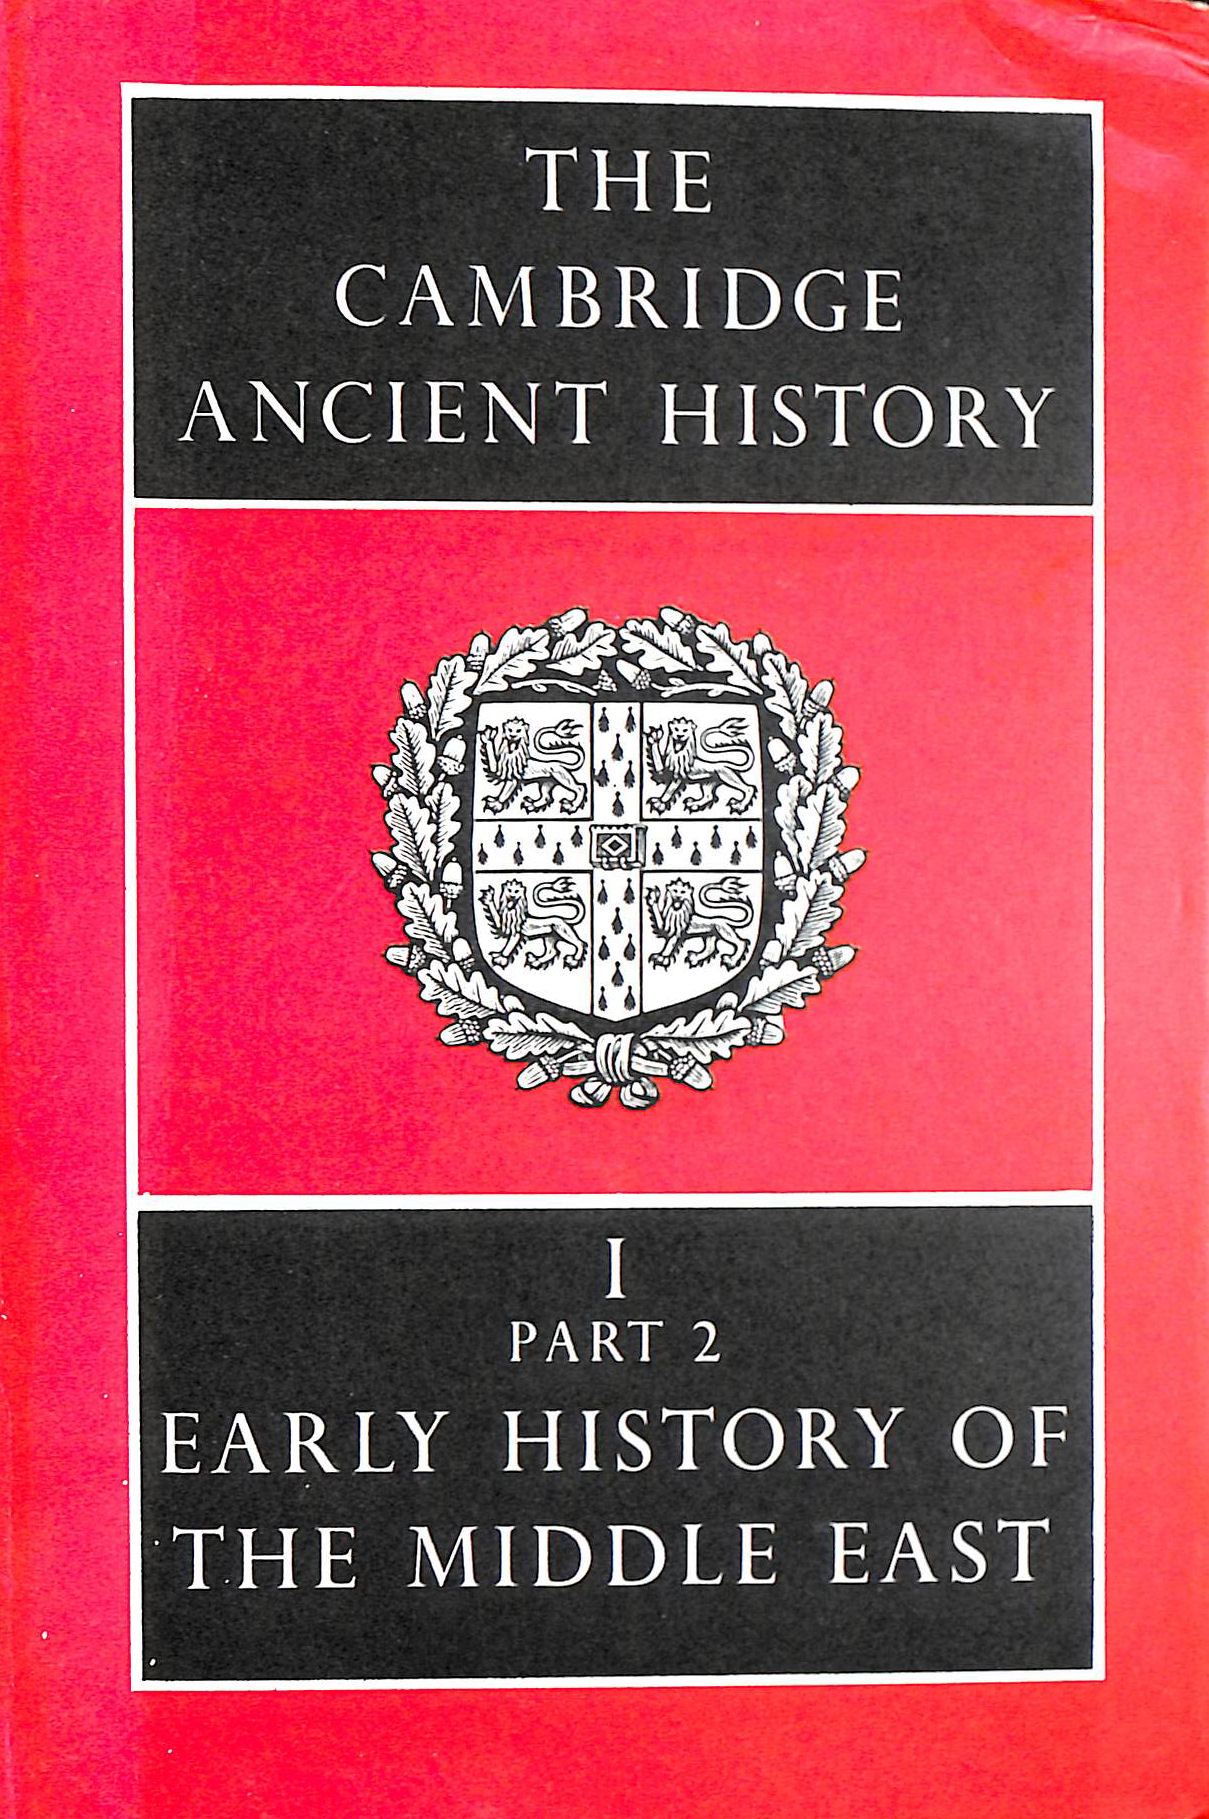 Image for The Cambridge Ancient History Volume 1, Part 2: Early History of the Middle East